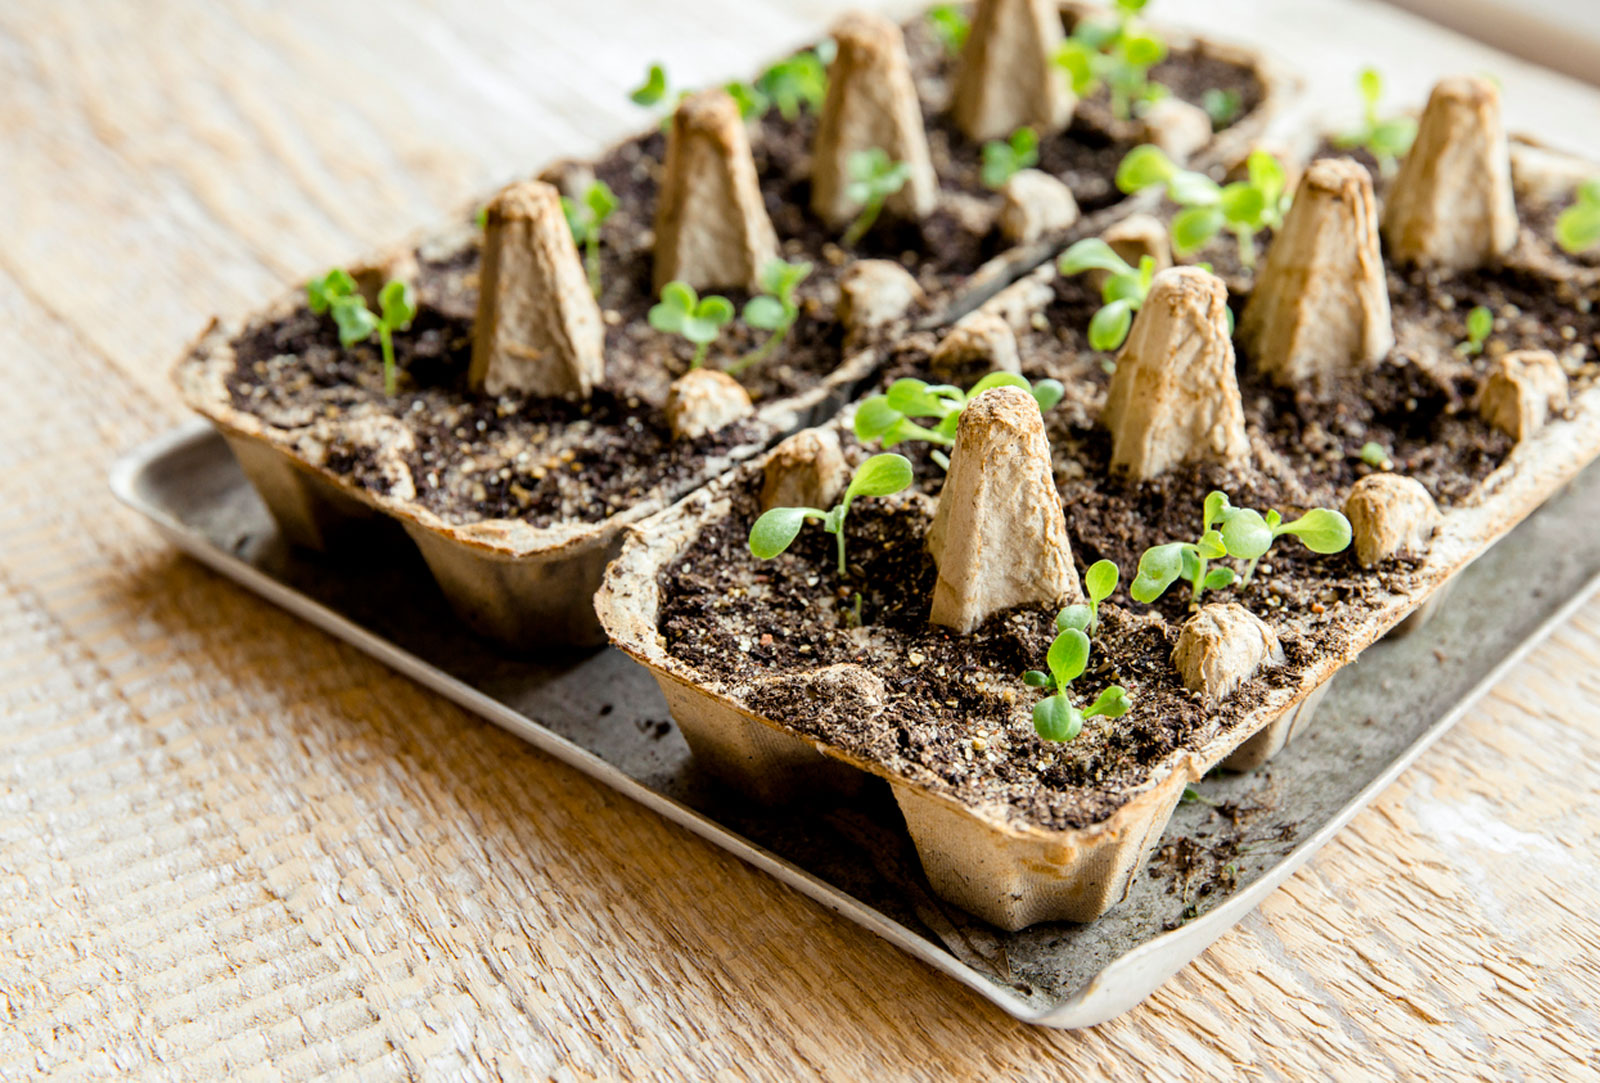 Starting Seeds in Egg Cartons